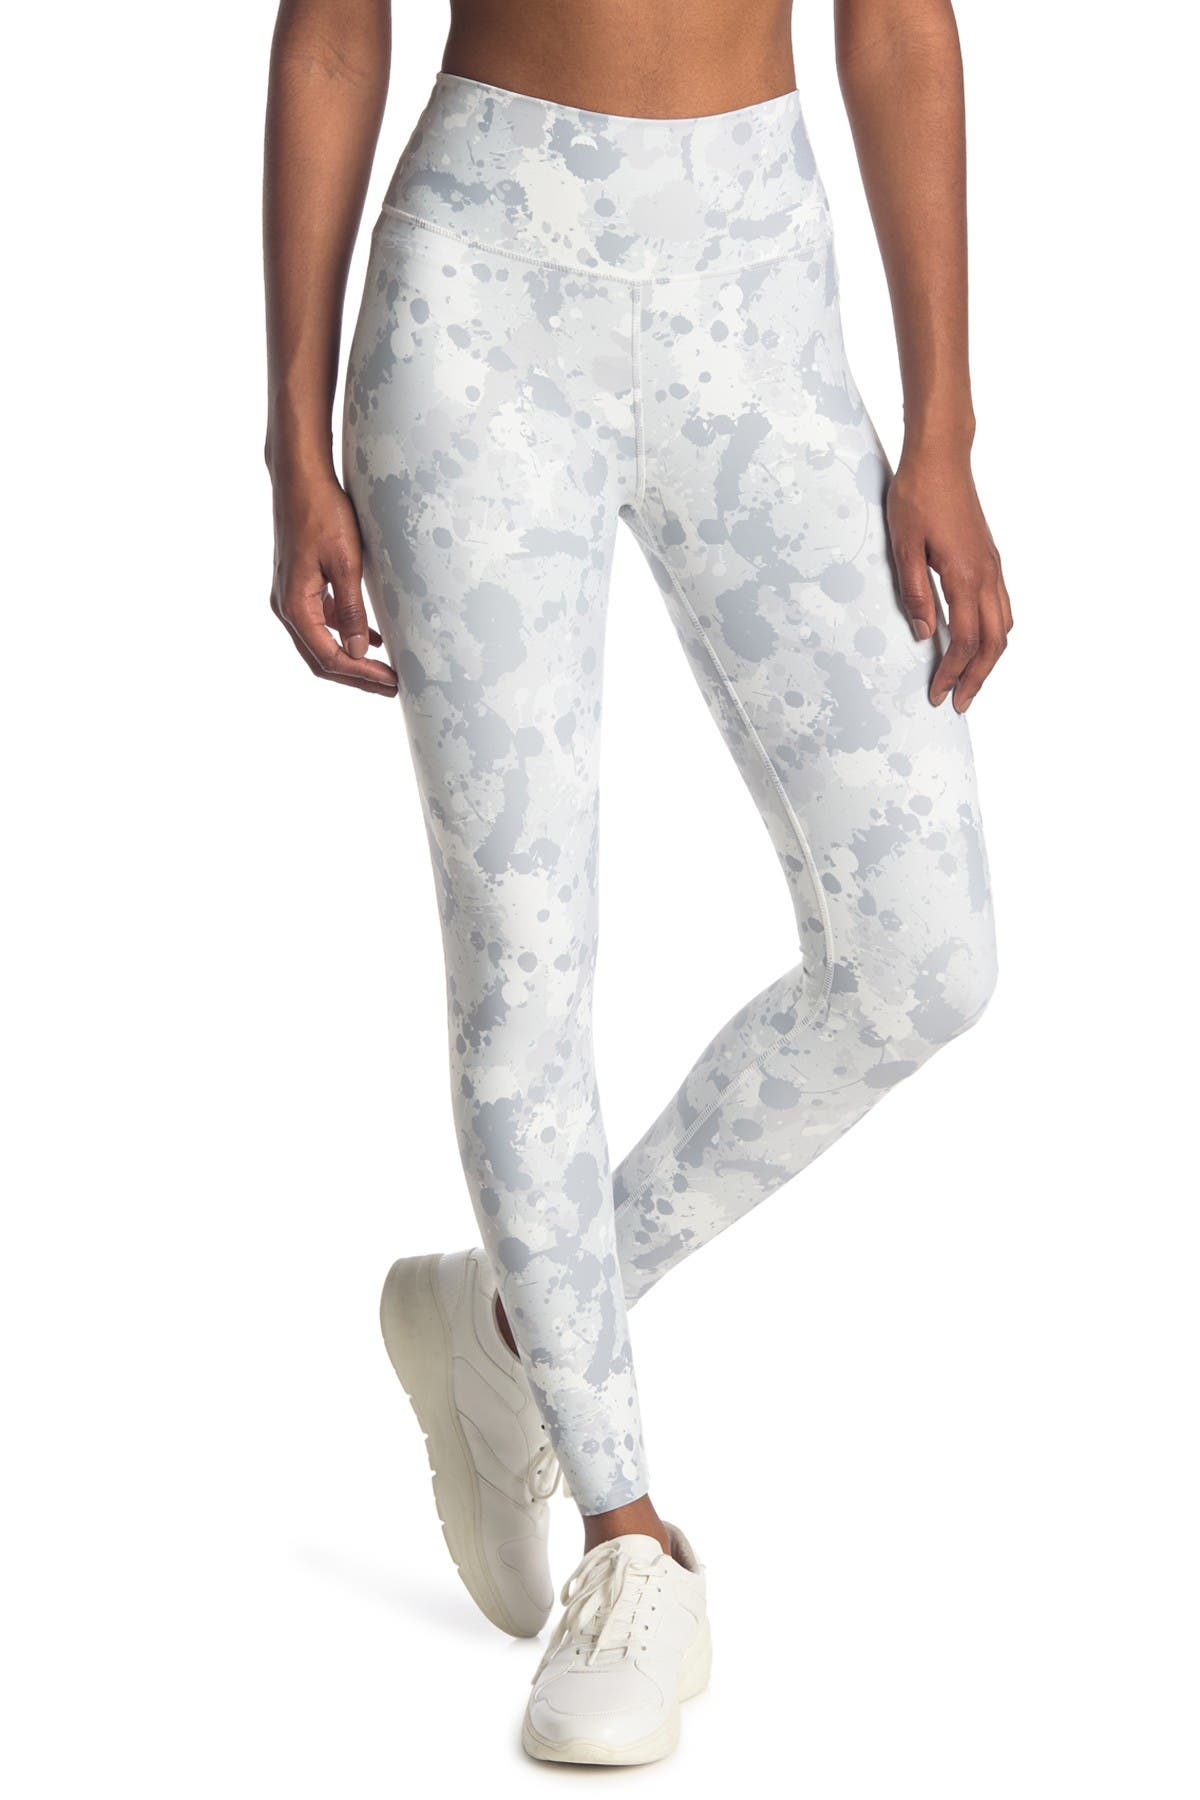 Image of SAGE COLLECTIVE Printed Leggings